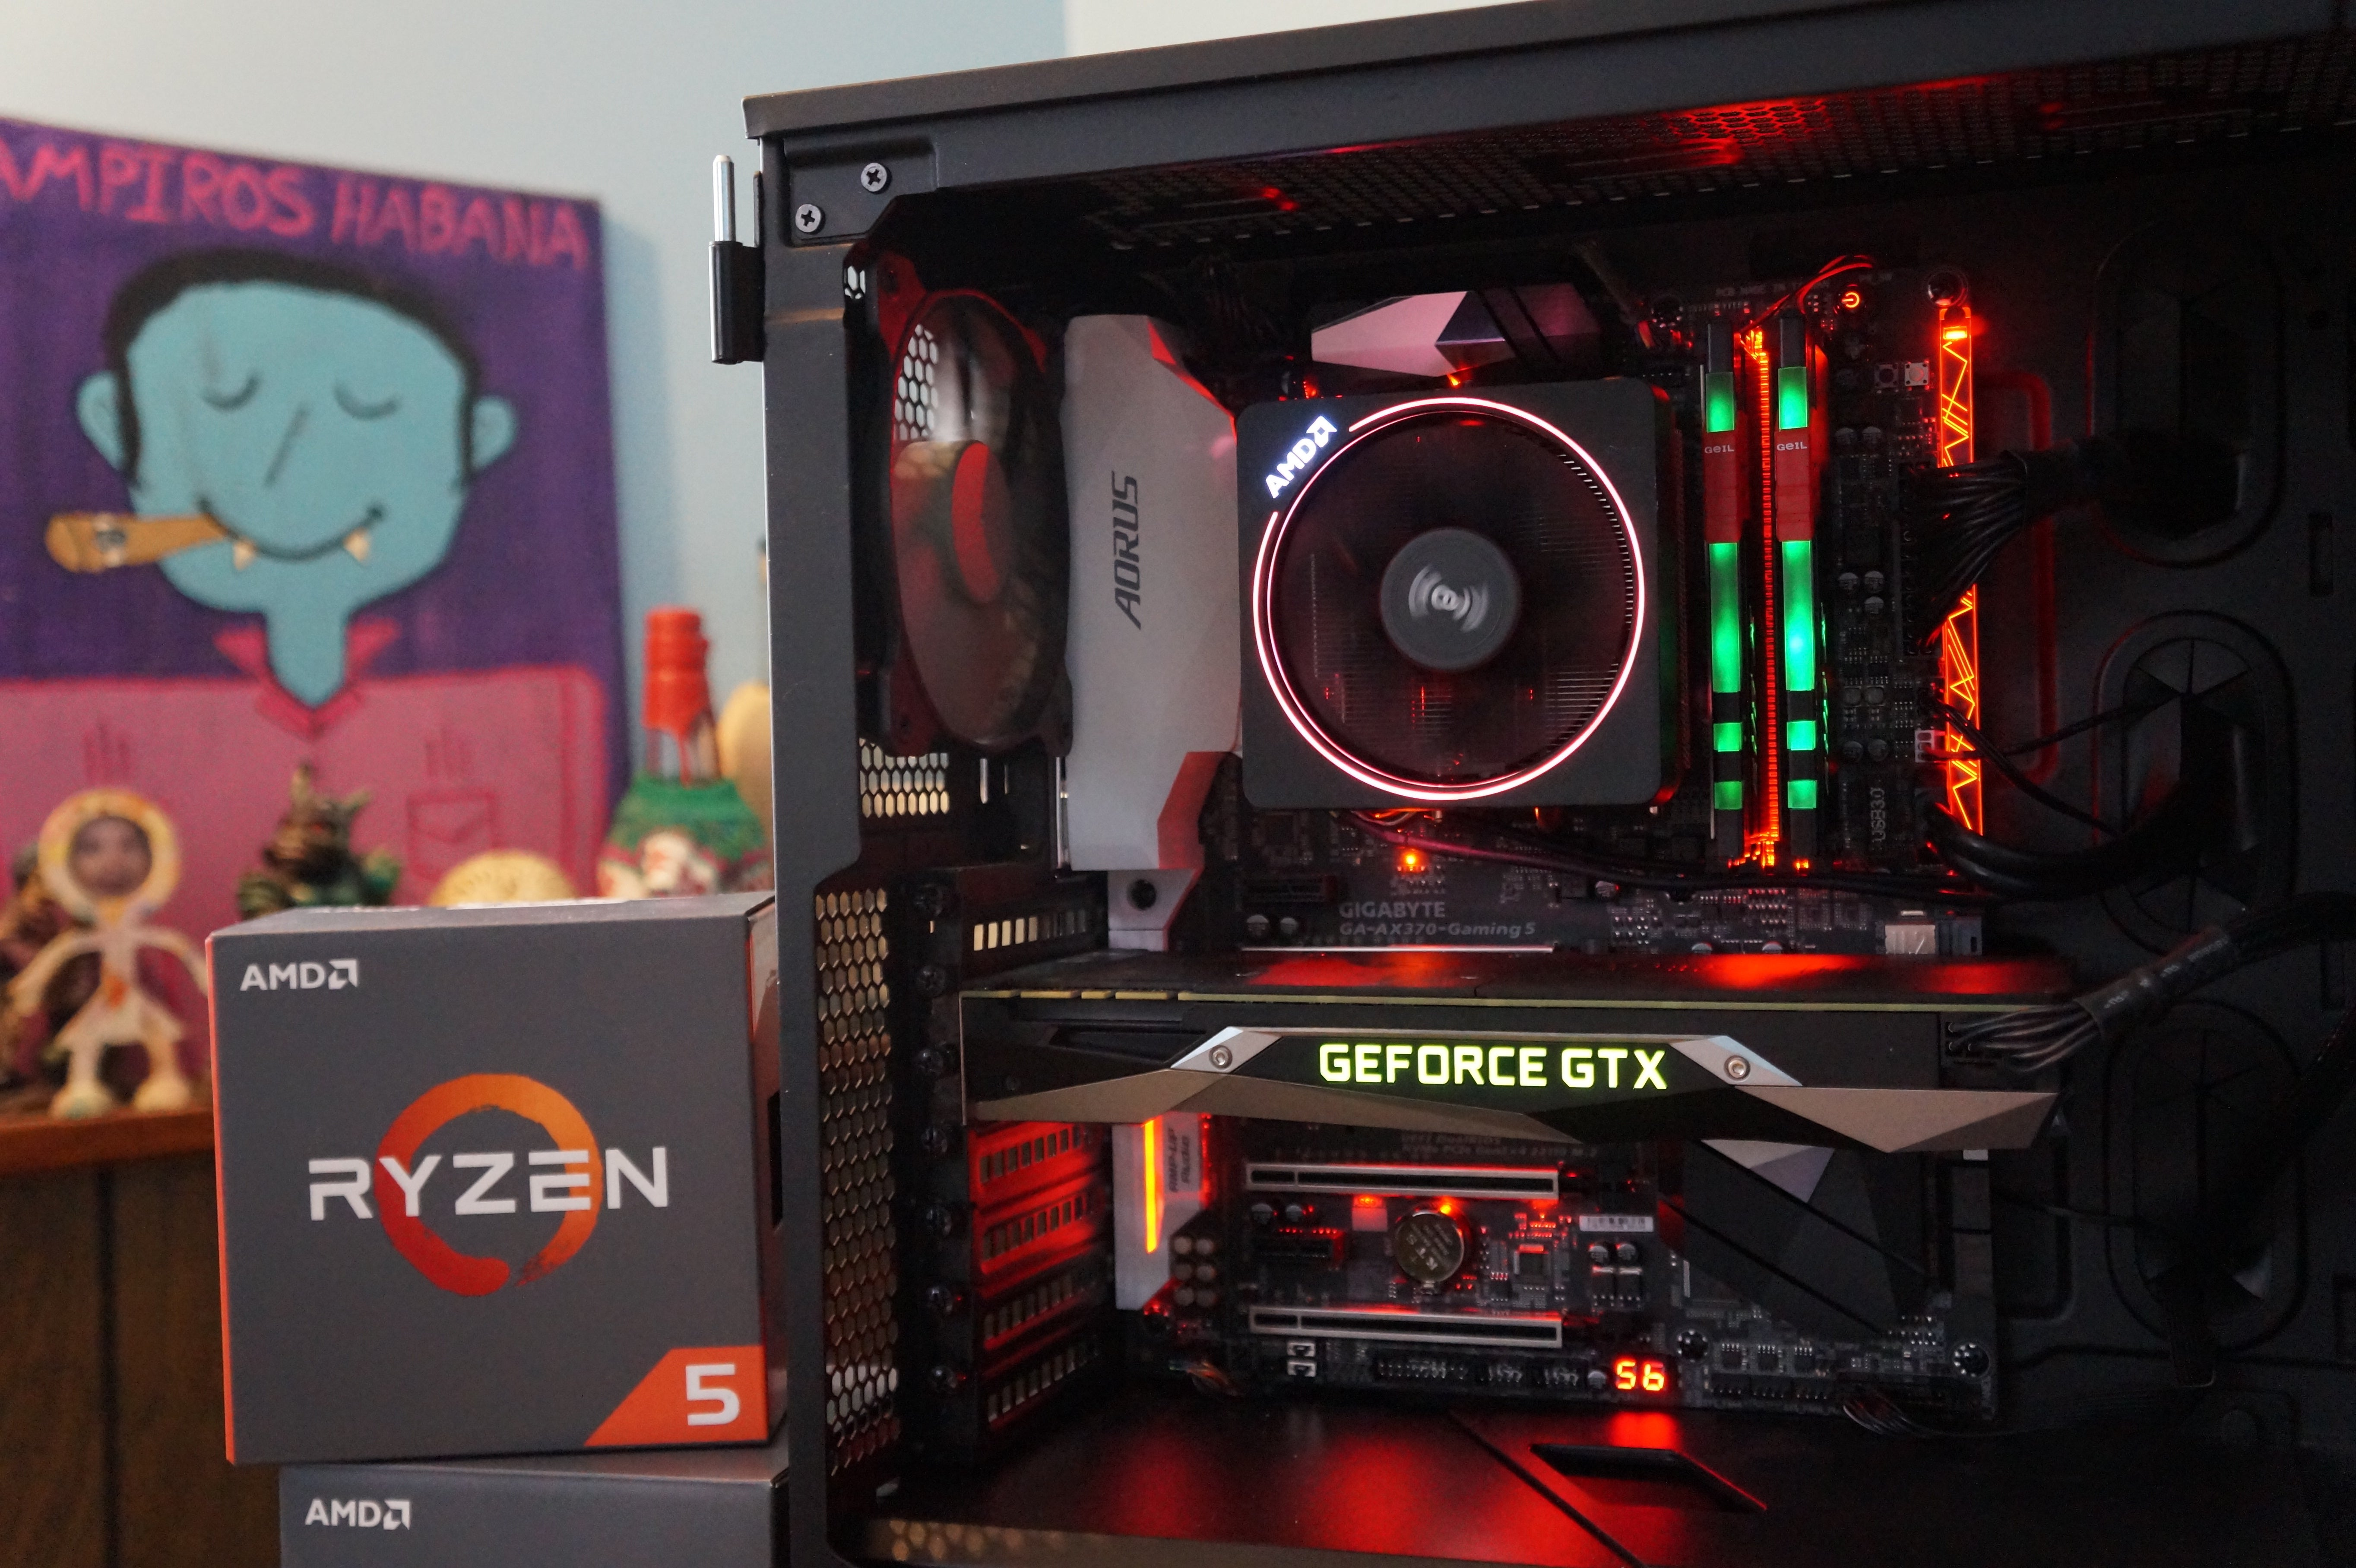 Ryzen 5 1600x Building A Versatile Work And Play Pc With